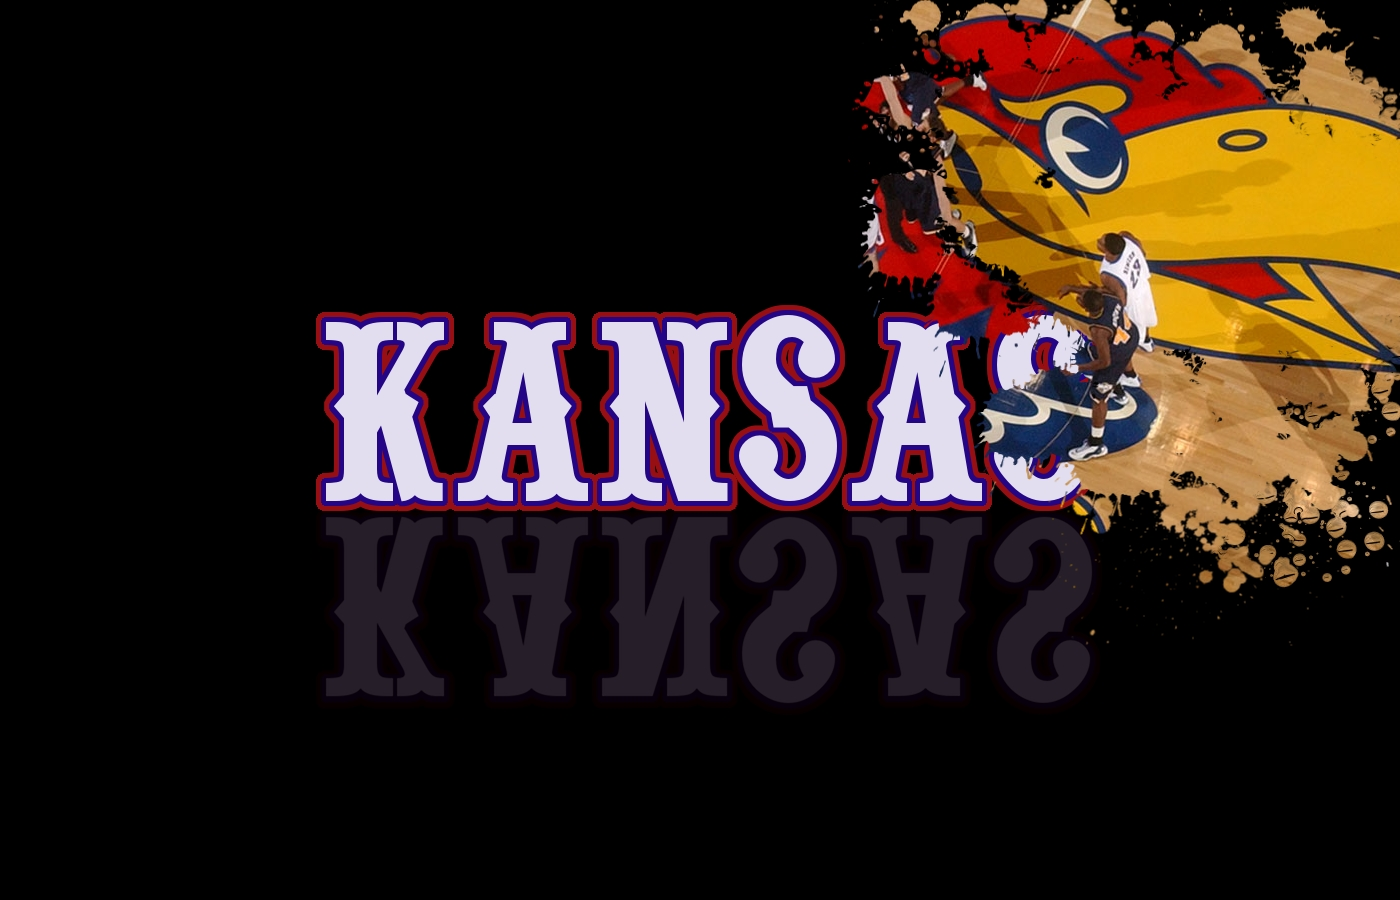 KANSAS SPLATTER by David Fleming   Desktop Wallpaper 1400x900